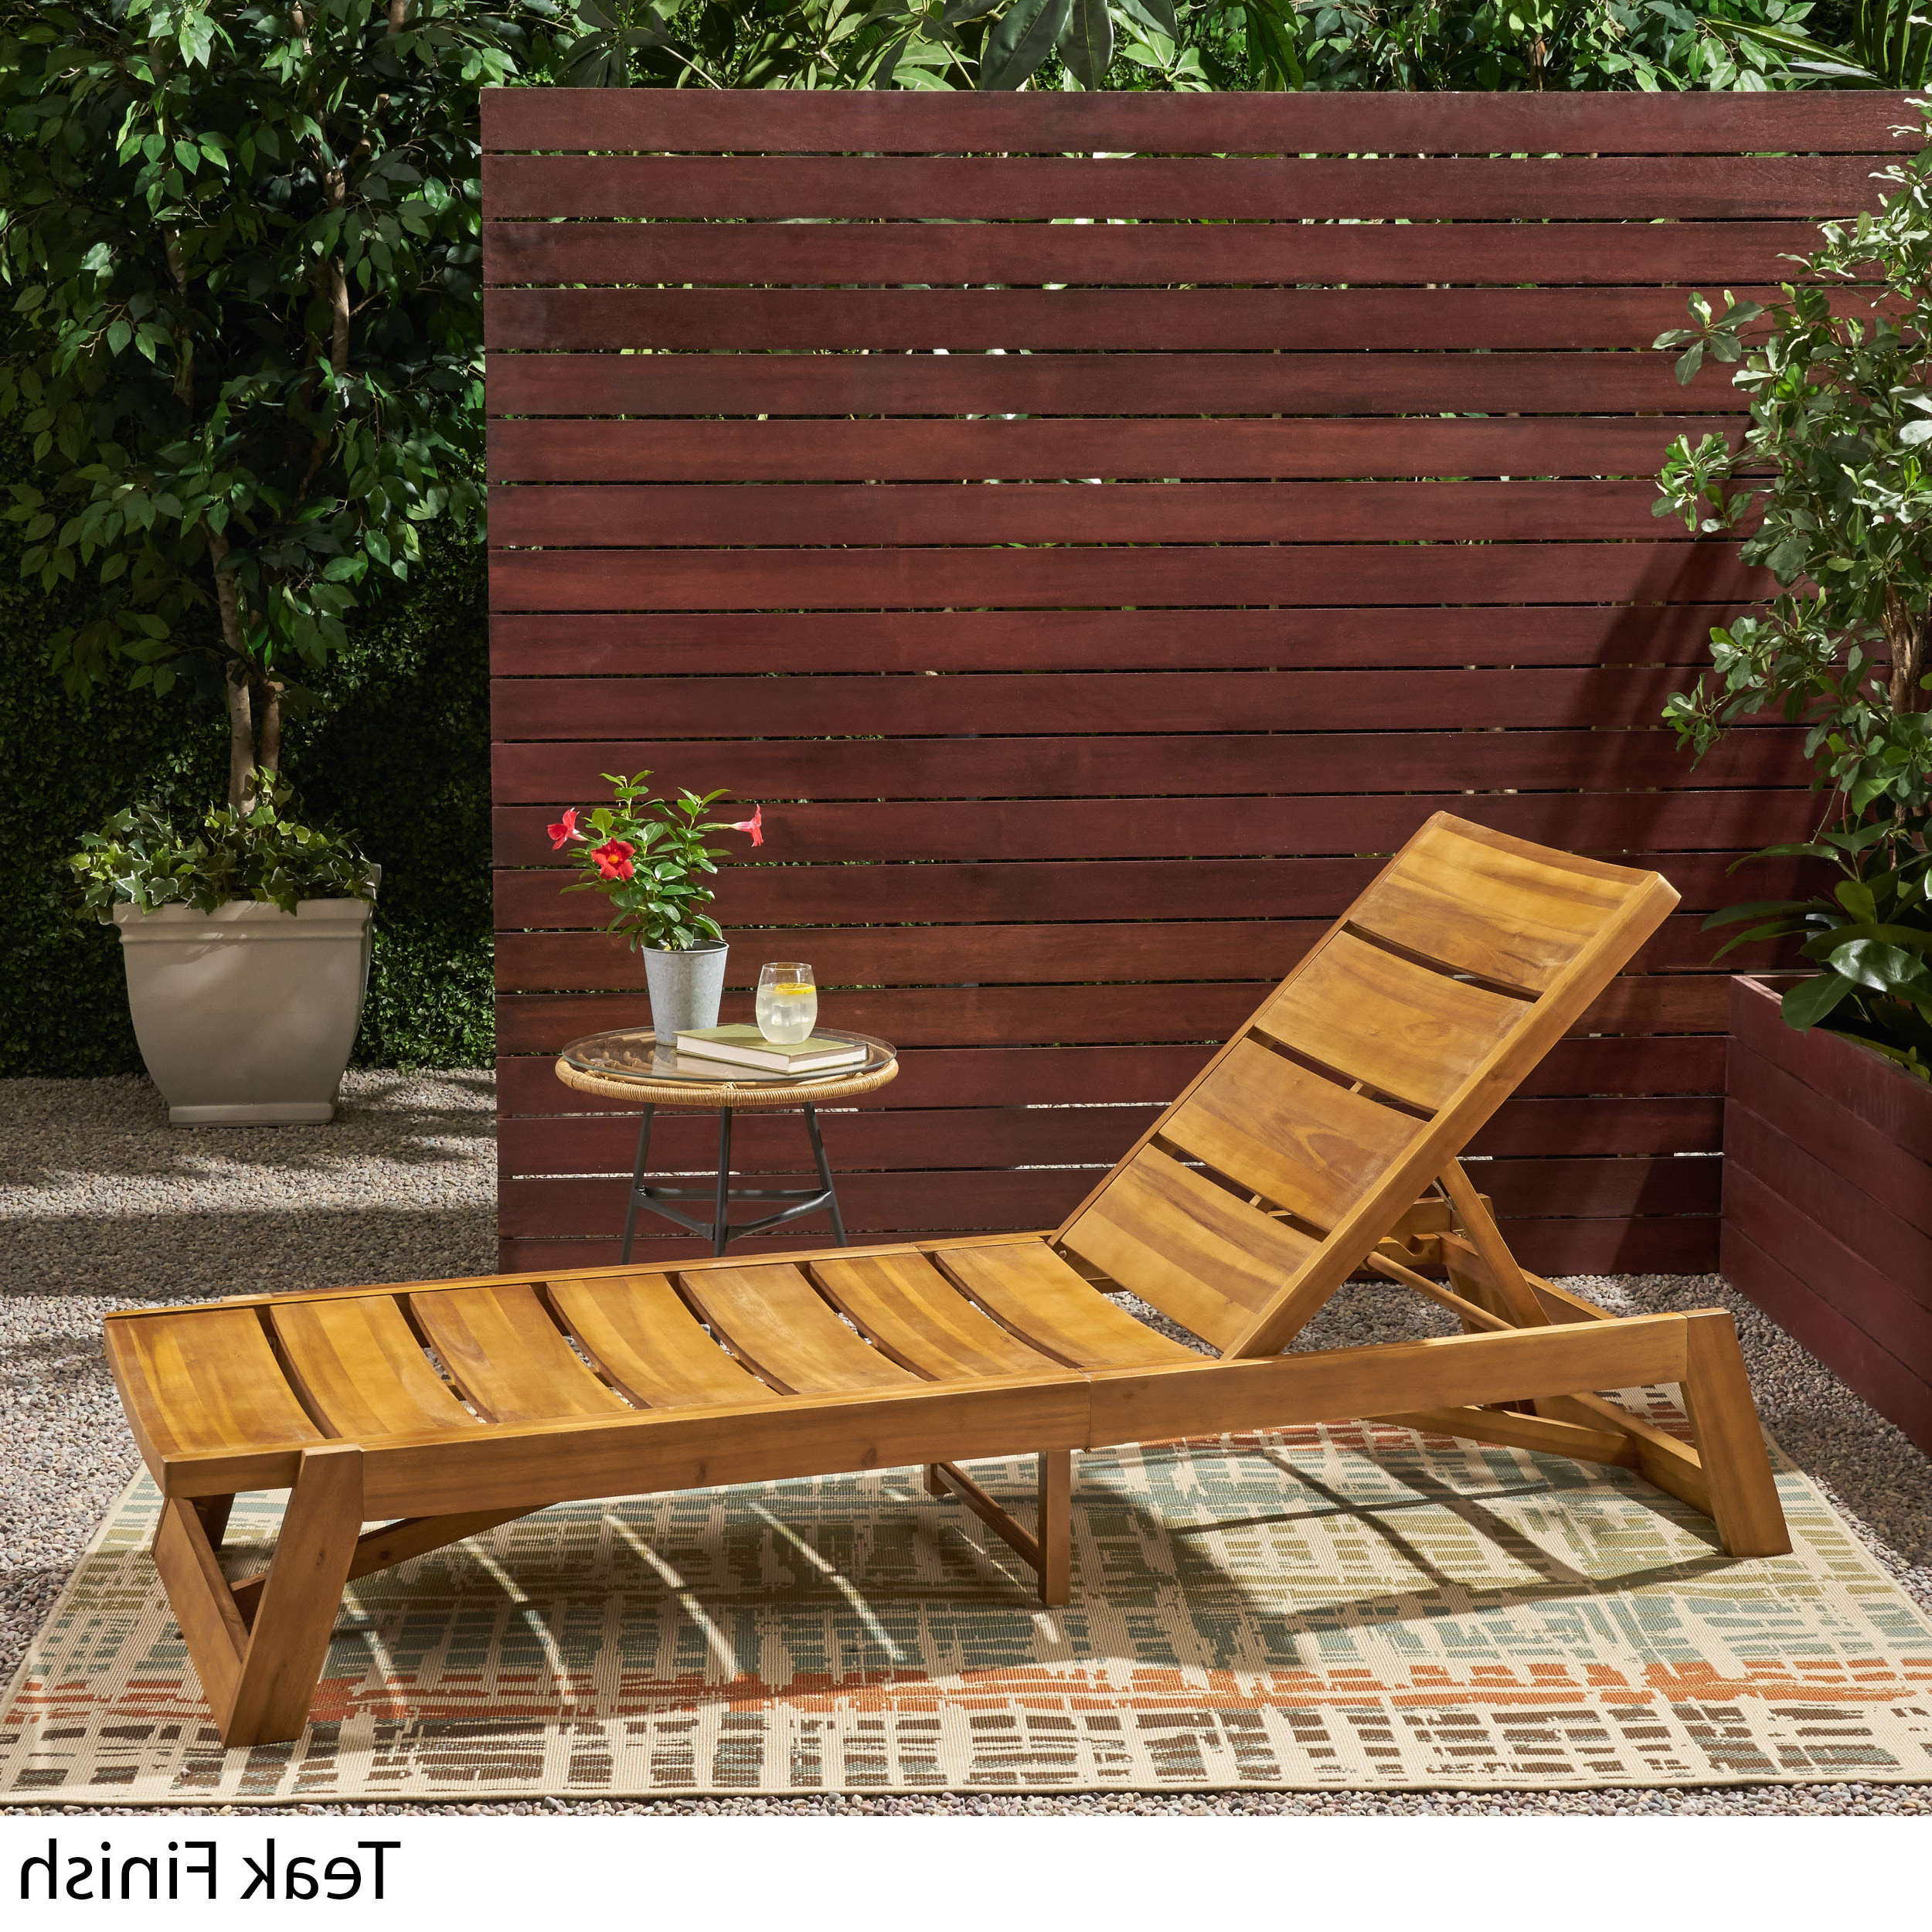 Maki Outdoor Wood Chaise Lounges Pertaining To Preferred Details About Maki Outdoor Wood And Iron Chaise Lounge (View 7 of 25)